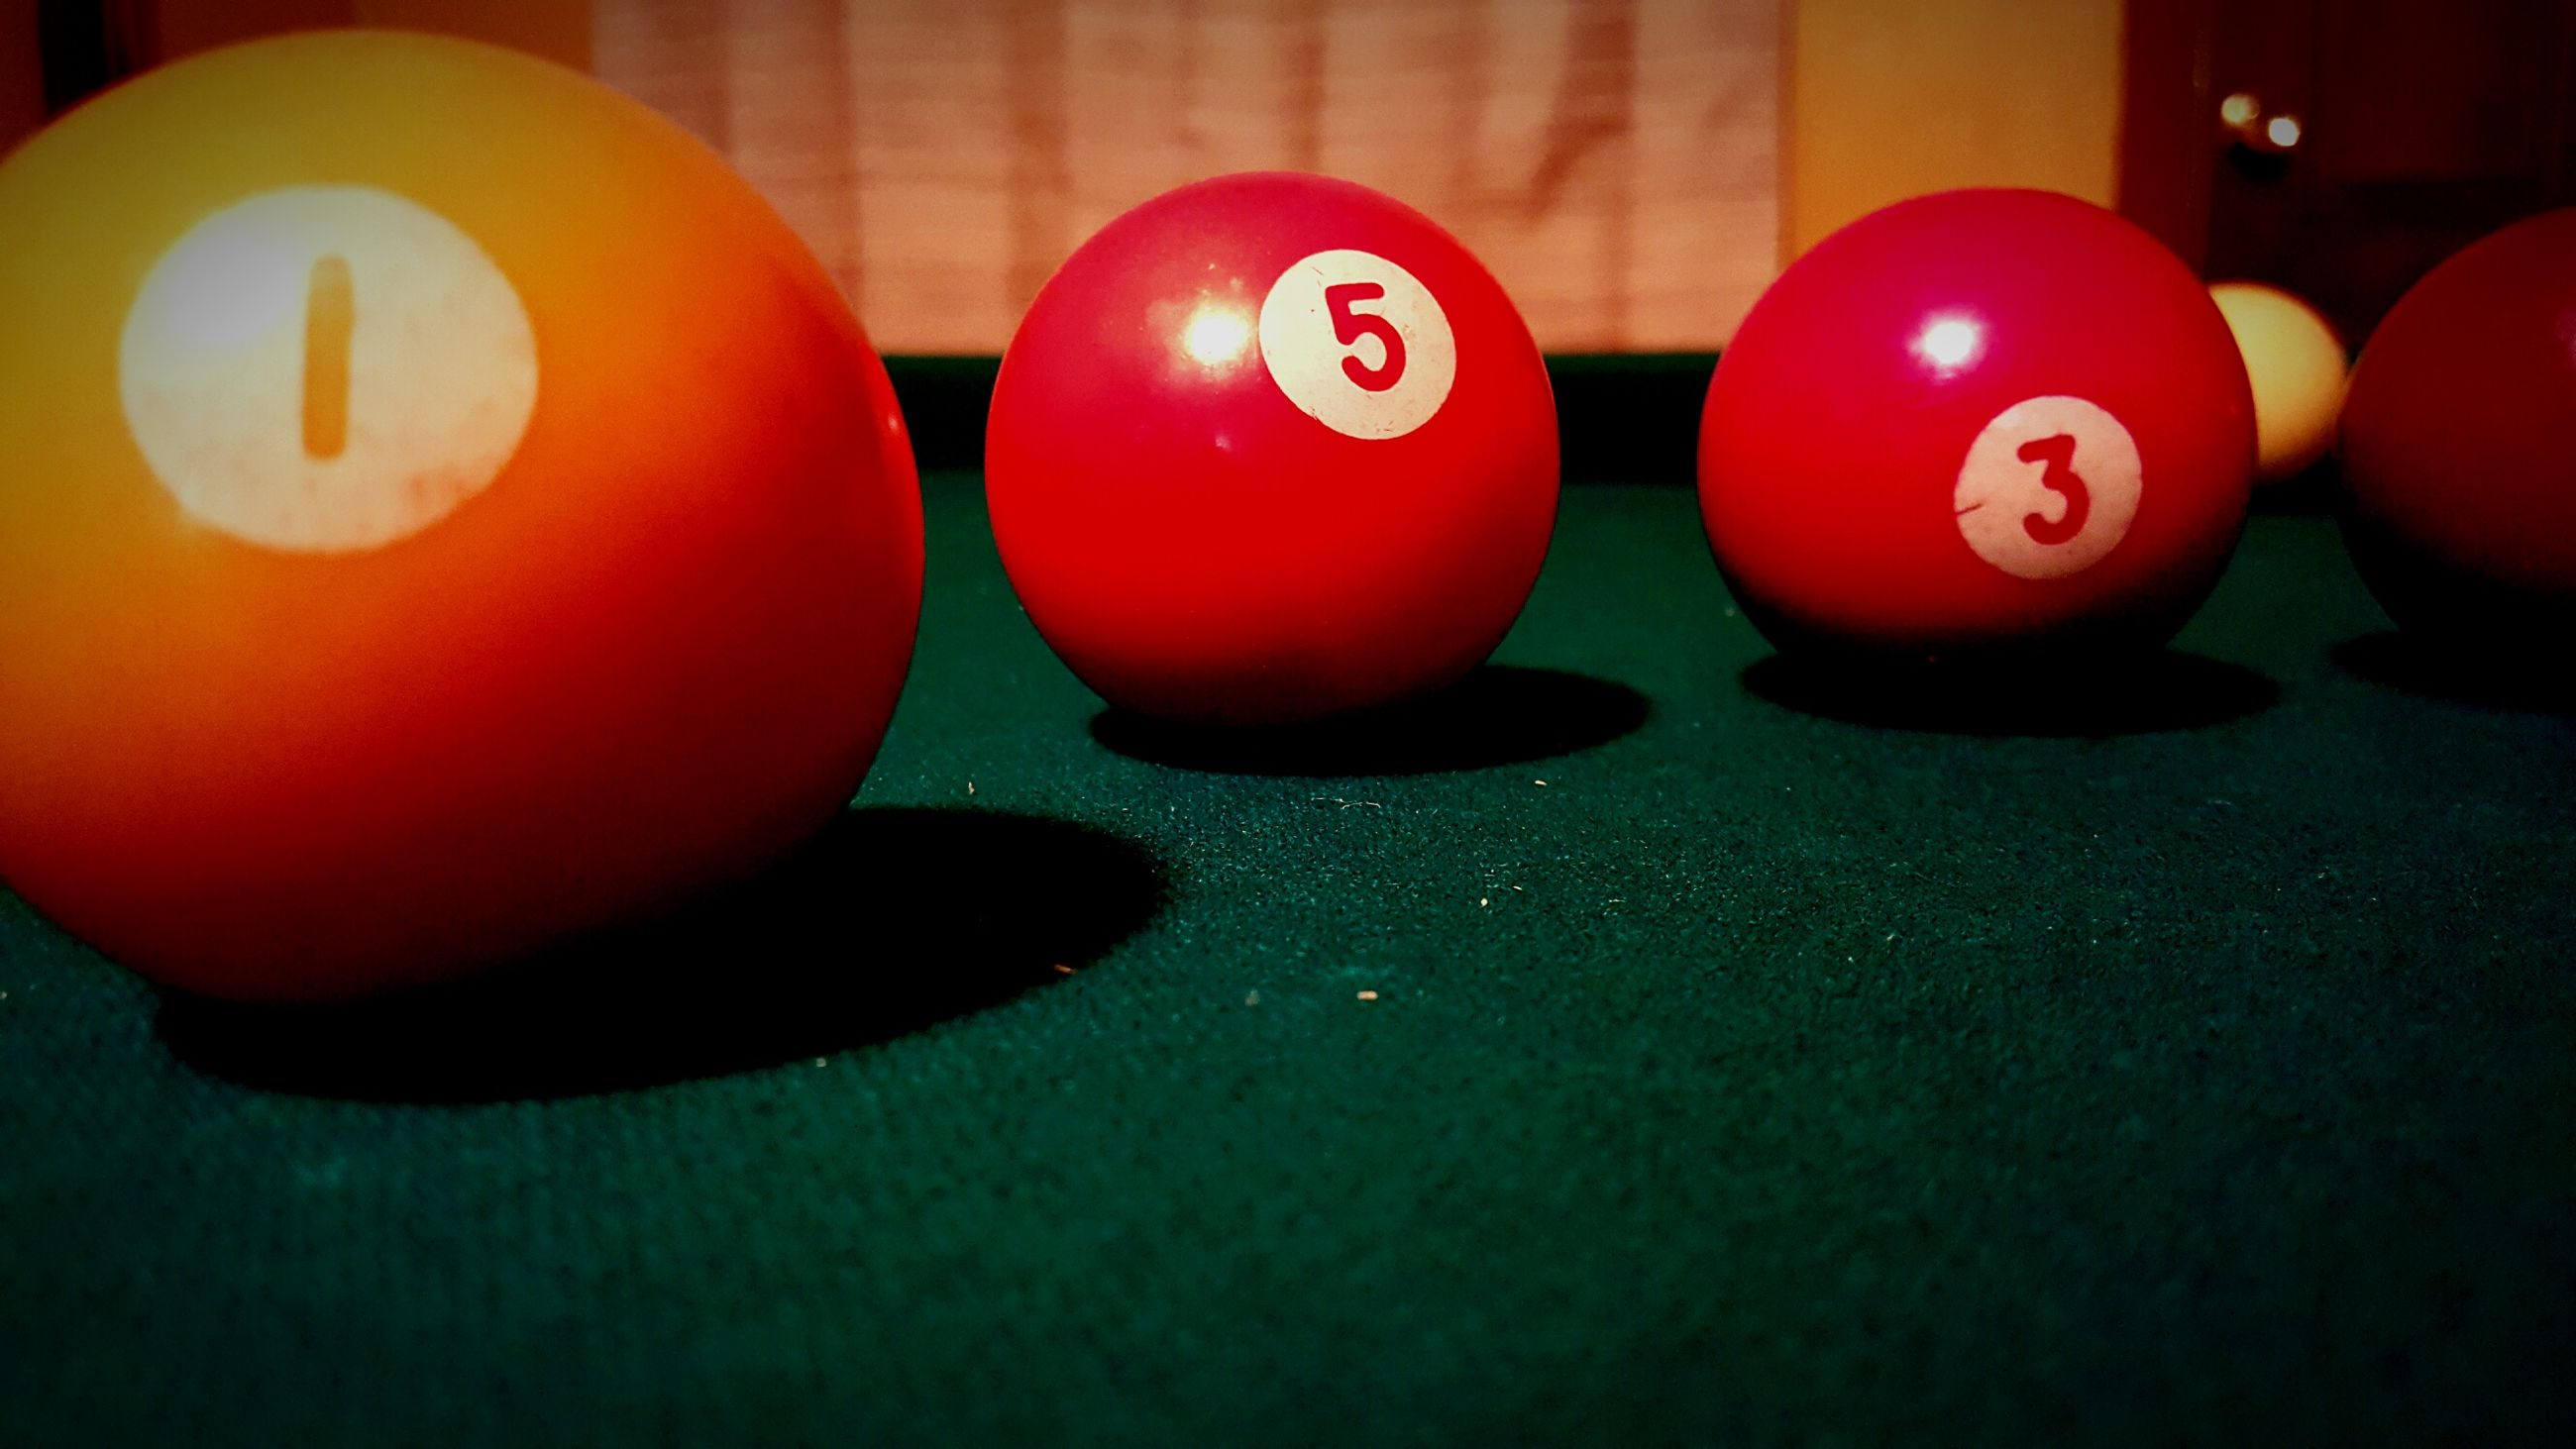 indoors, red, still life, close-up, table, food and drink, high angle view, orange color, ball, no people, food, tomato, multi colored, vegetable, healthy eating, circle, variation, balloon, illuminated, selective focus